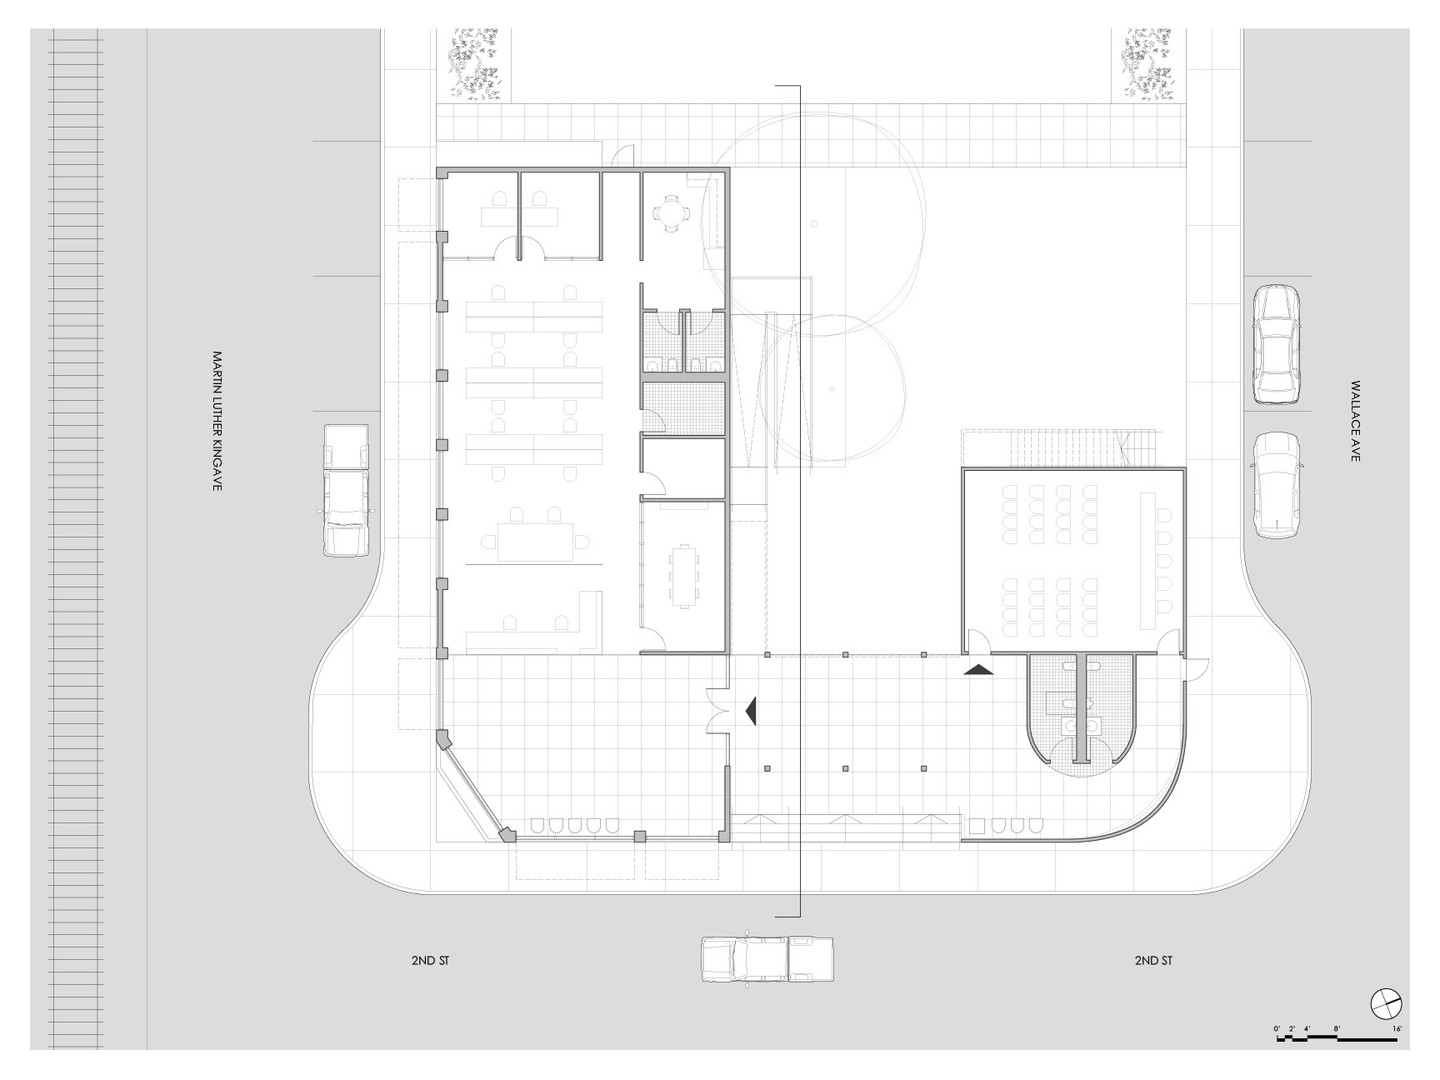 18_08_09-GroundFloorPlan_1-8.jpeg